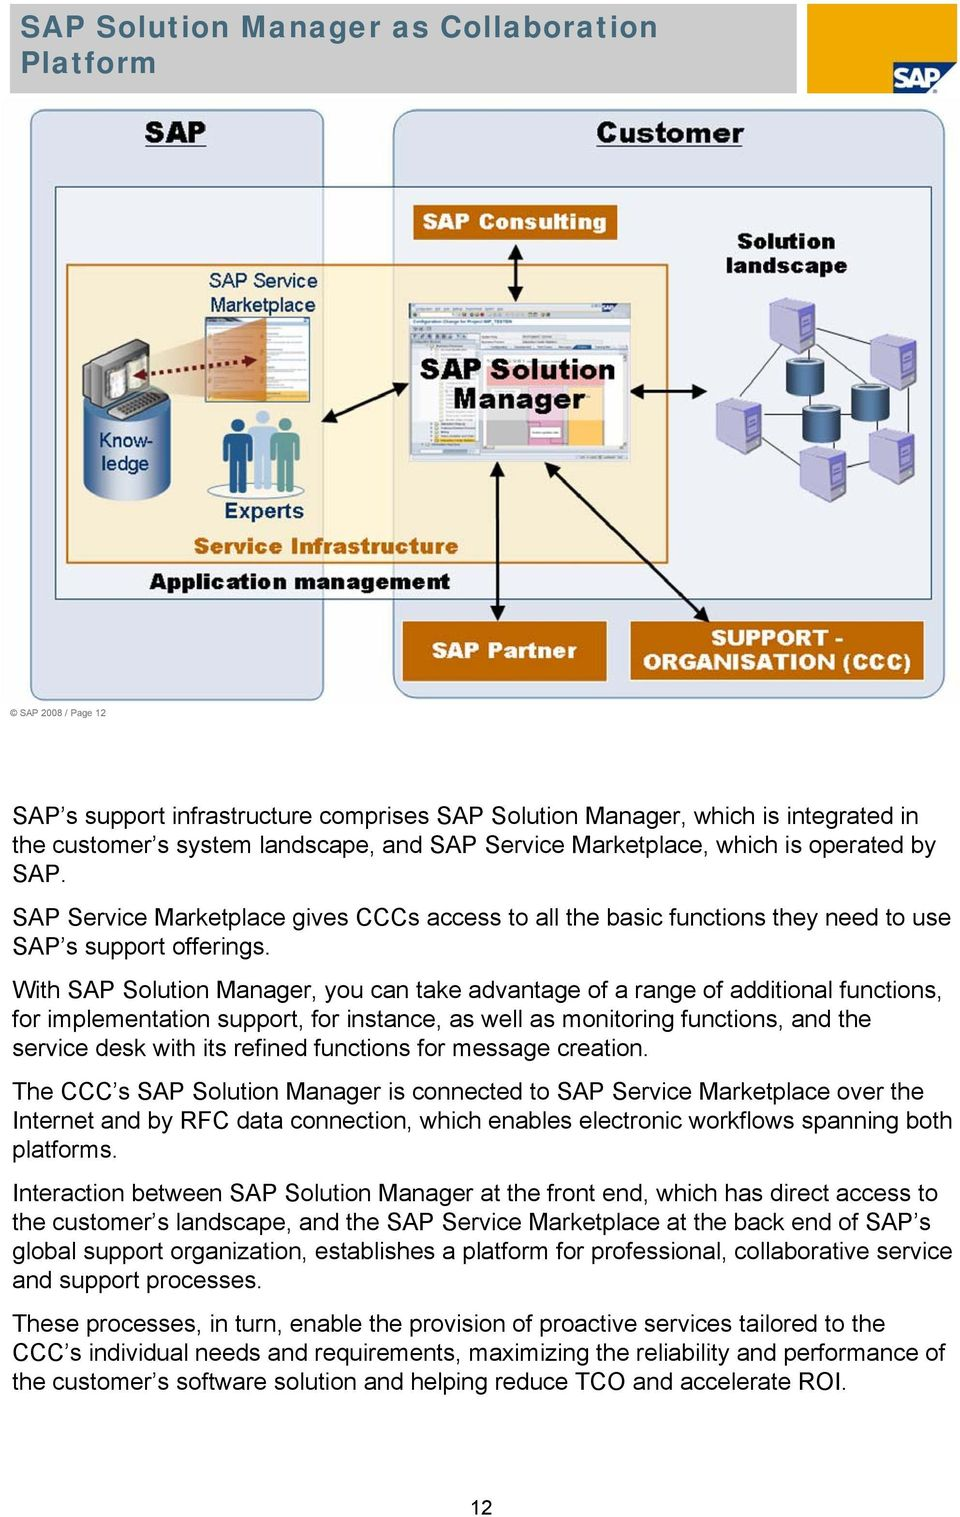 With SAP Solution Manager, you can take advantage of a range of additional functions, for implementation support, for instance, as well as monitoring functions, and the service desk with its refined